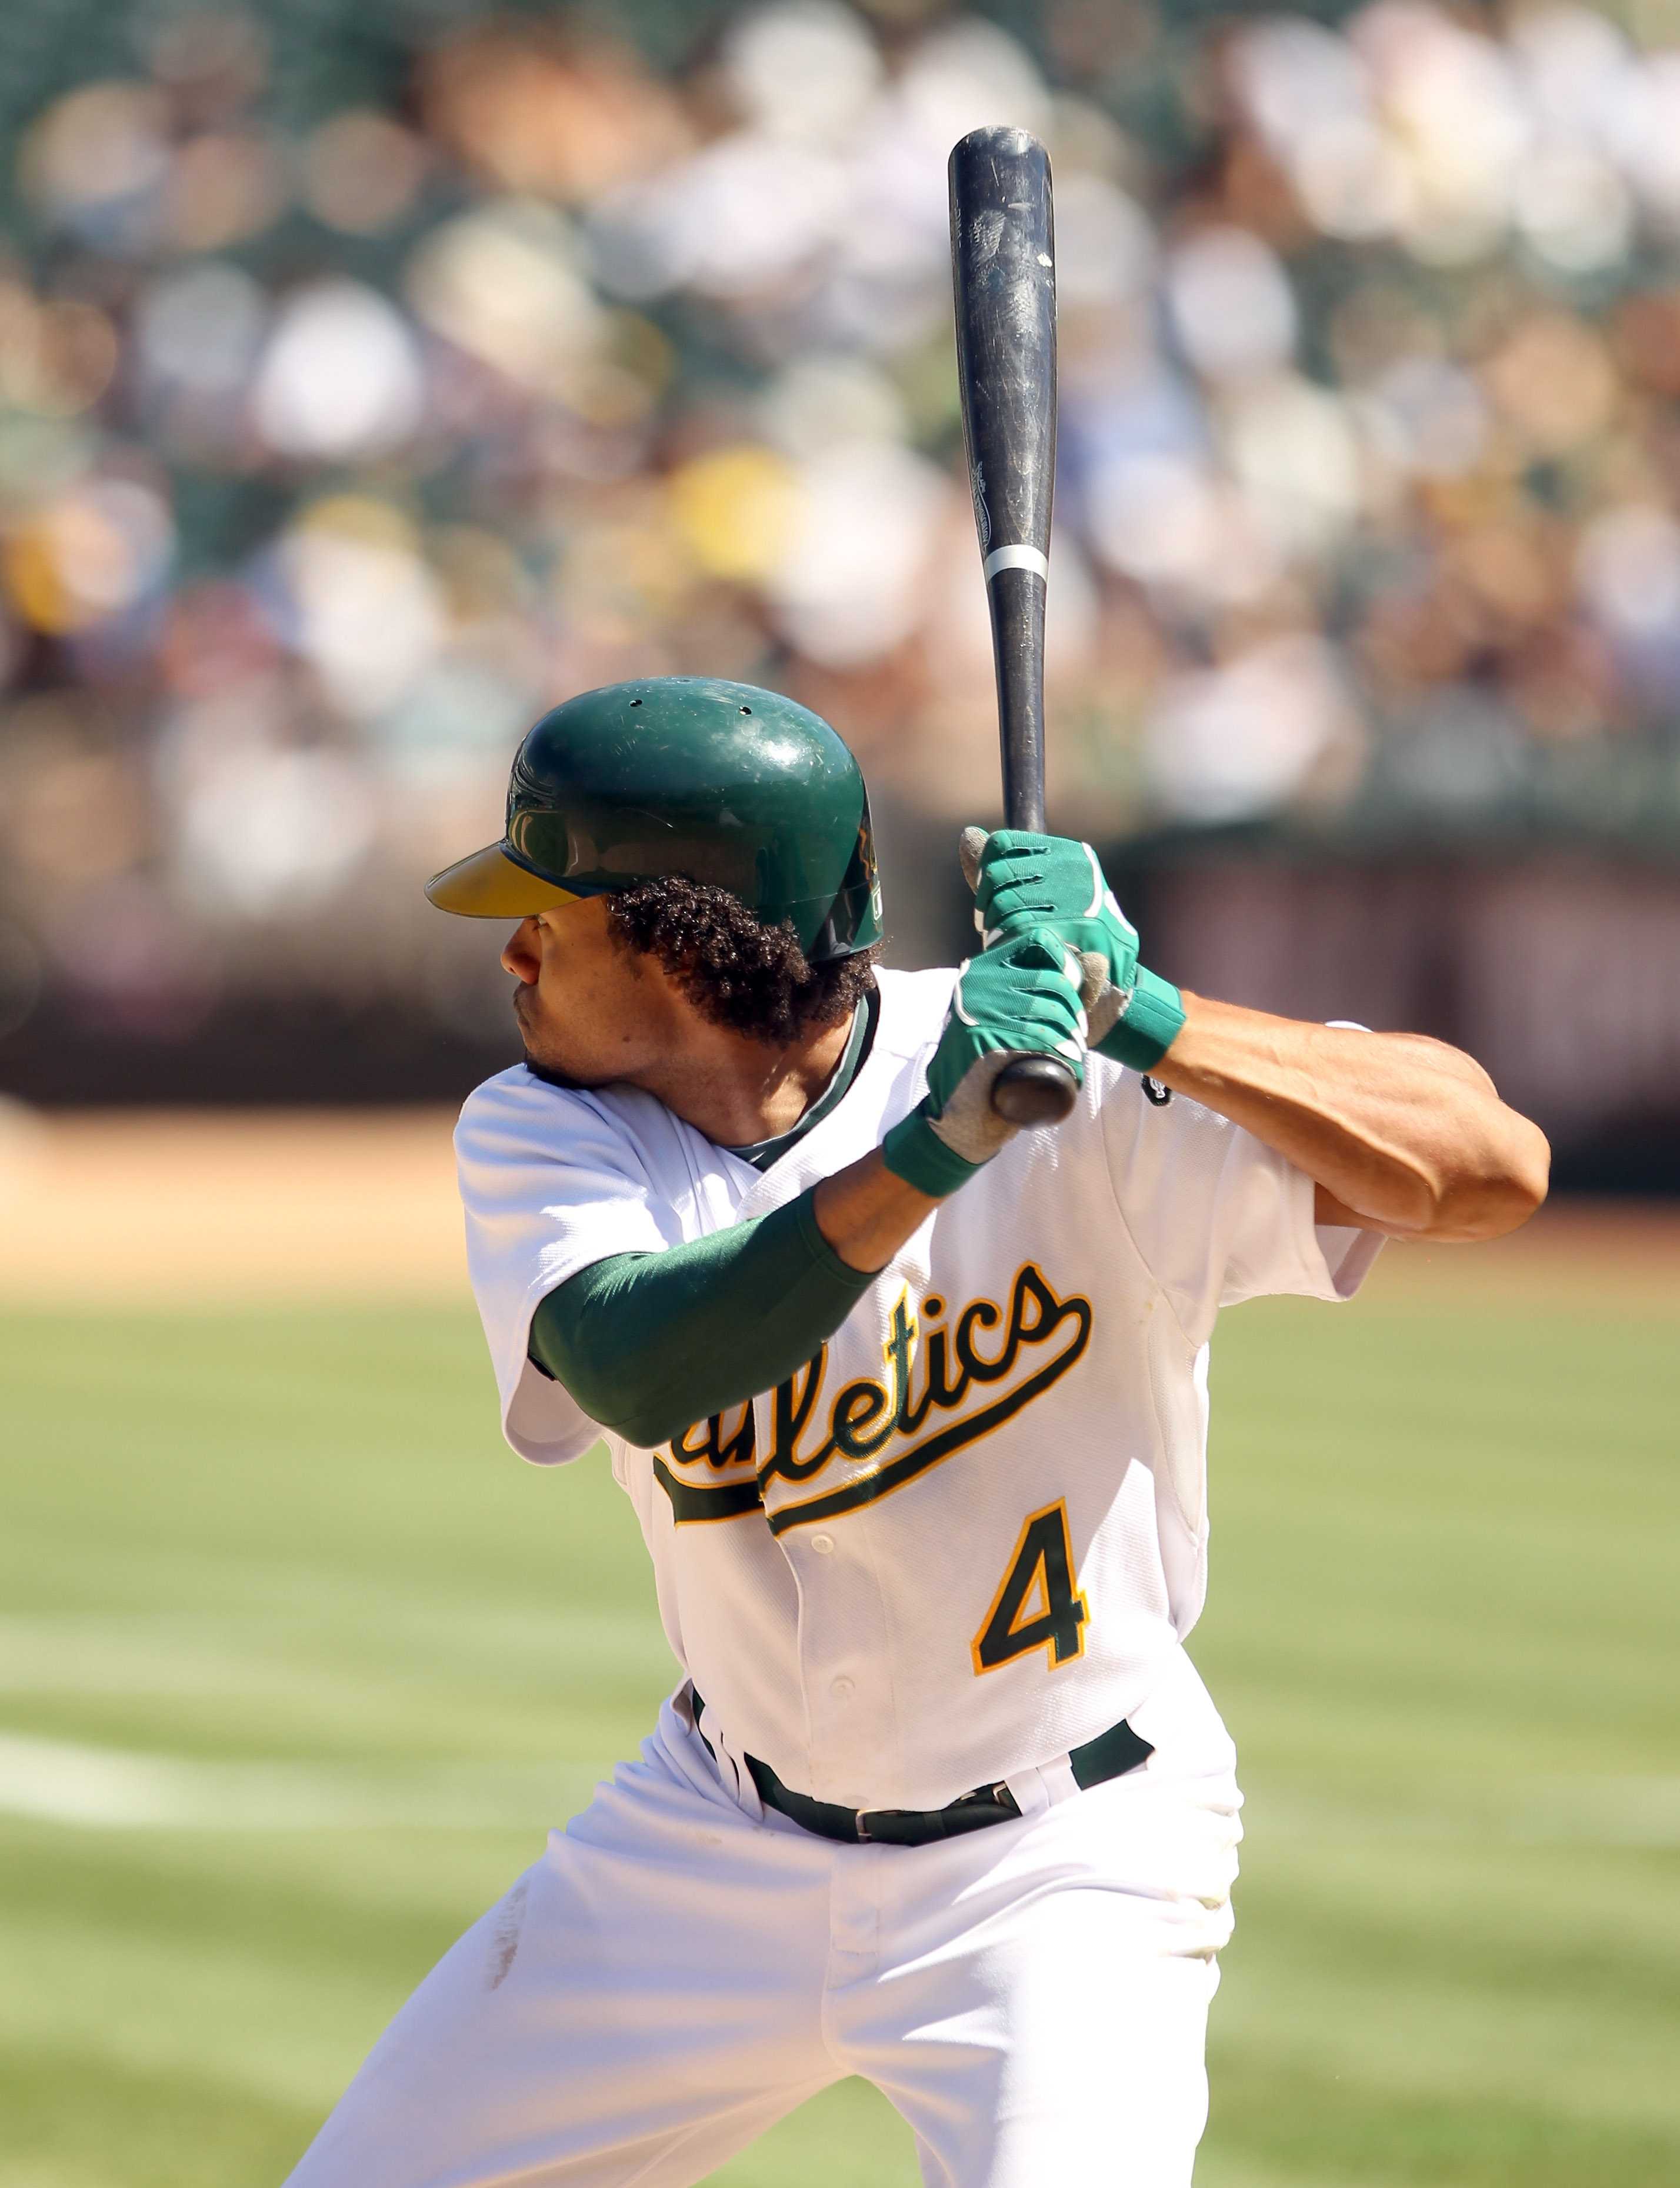 OAKLAND, CA - SEPTEMBER 06:  Coco Crisp #4 of the Oakland Athletics bats against the Seattle Mariners at the Oakland-Alameda County Coliseum on September 6, 2010 in Oakland, California.  (Photo by Ezra Shaw/Getty Images)